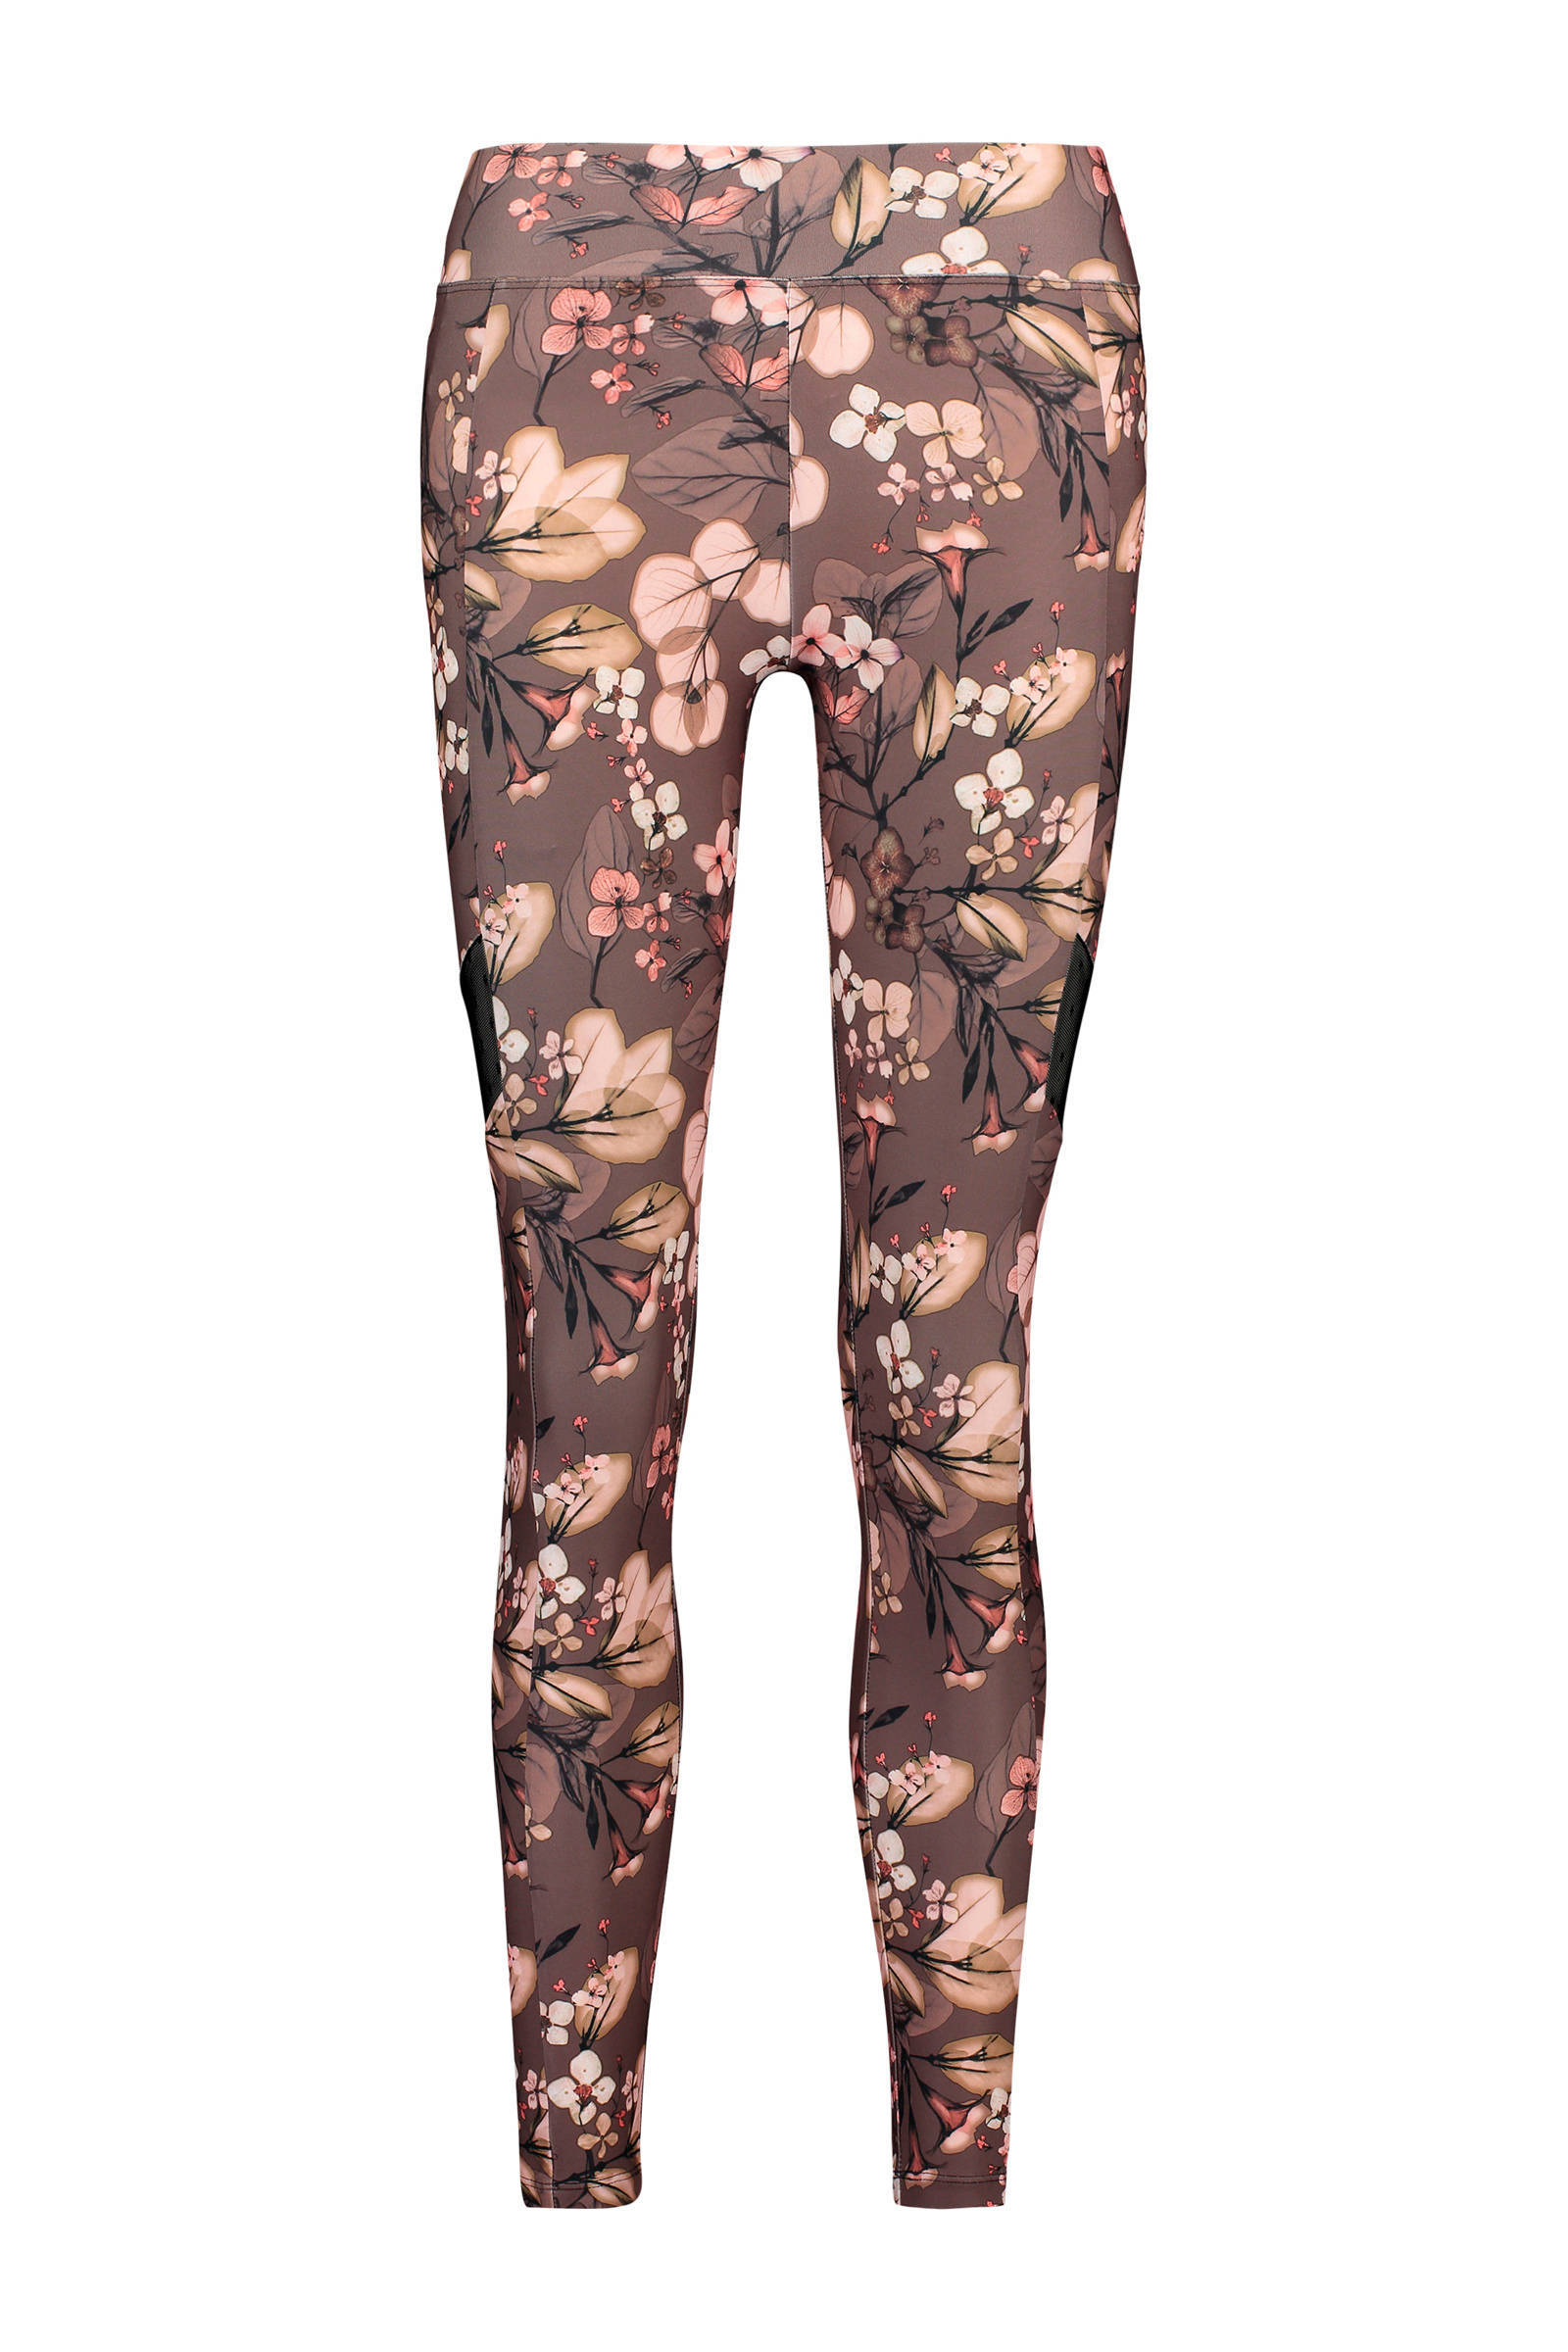 Hunkemöller HKMX sportlegging all over bloemen print (dames)